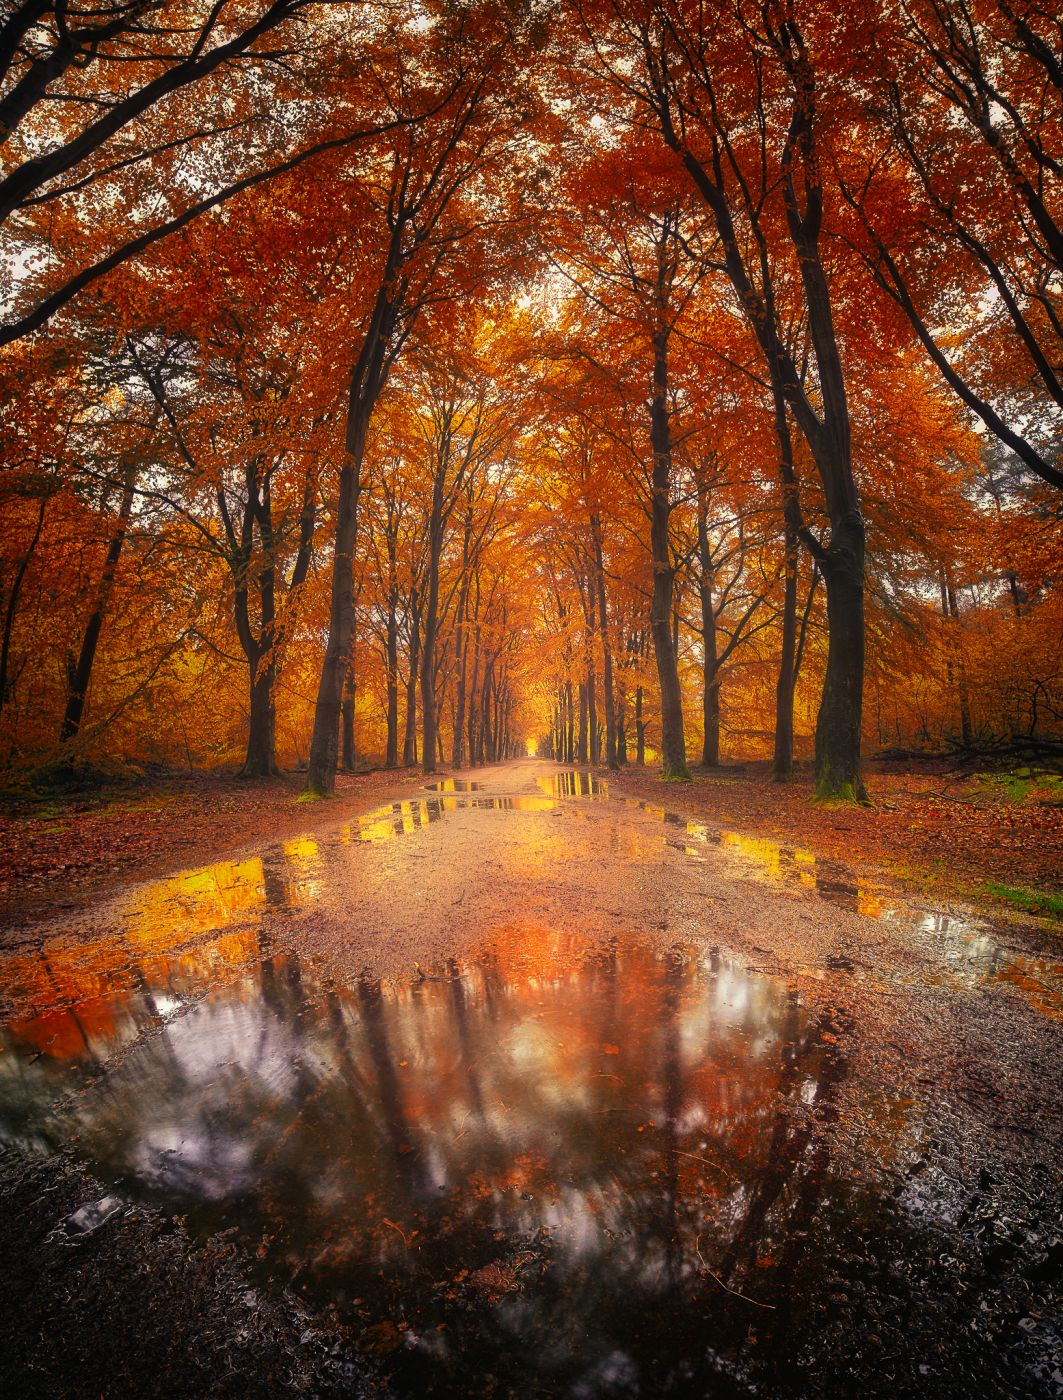 Magical autumn forest in Rijsterbos, Netherlands